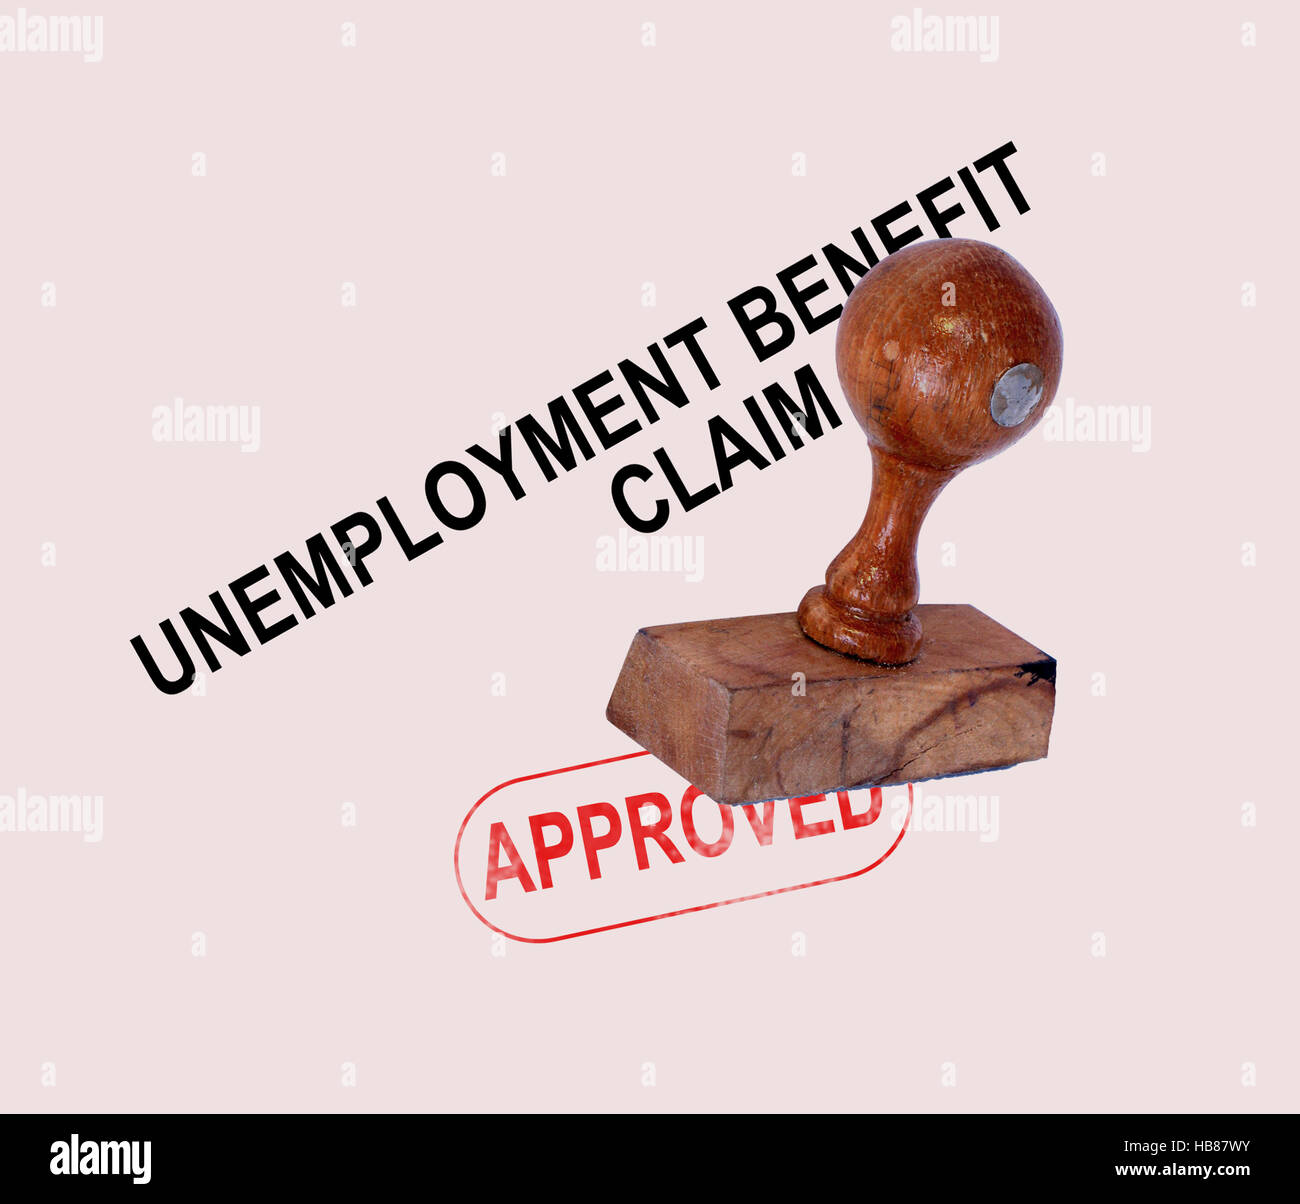 Unemployment Benefit Claim Approved - Stock Image